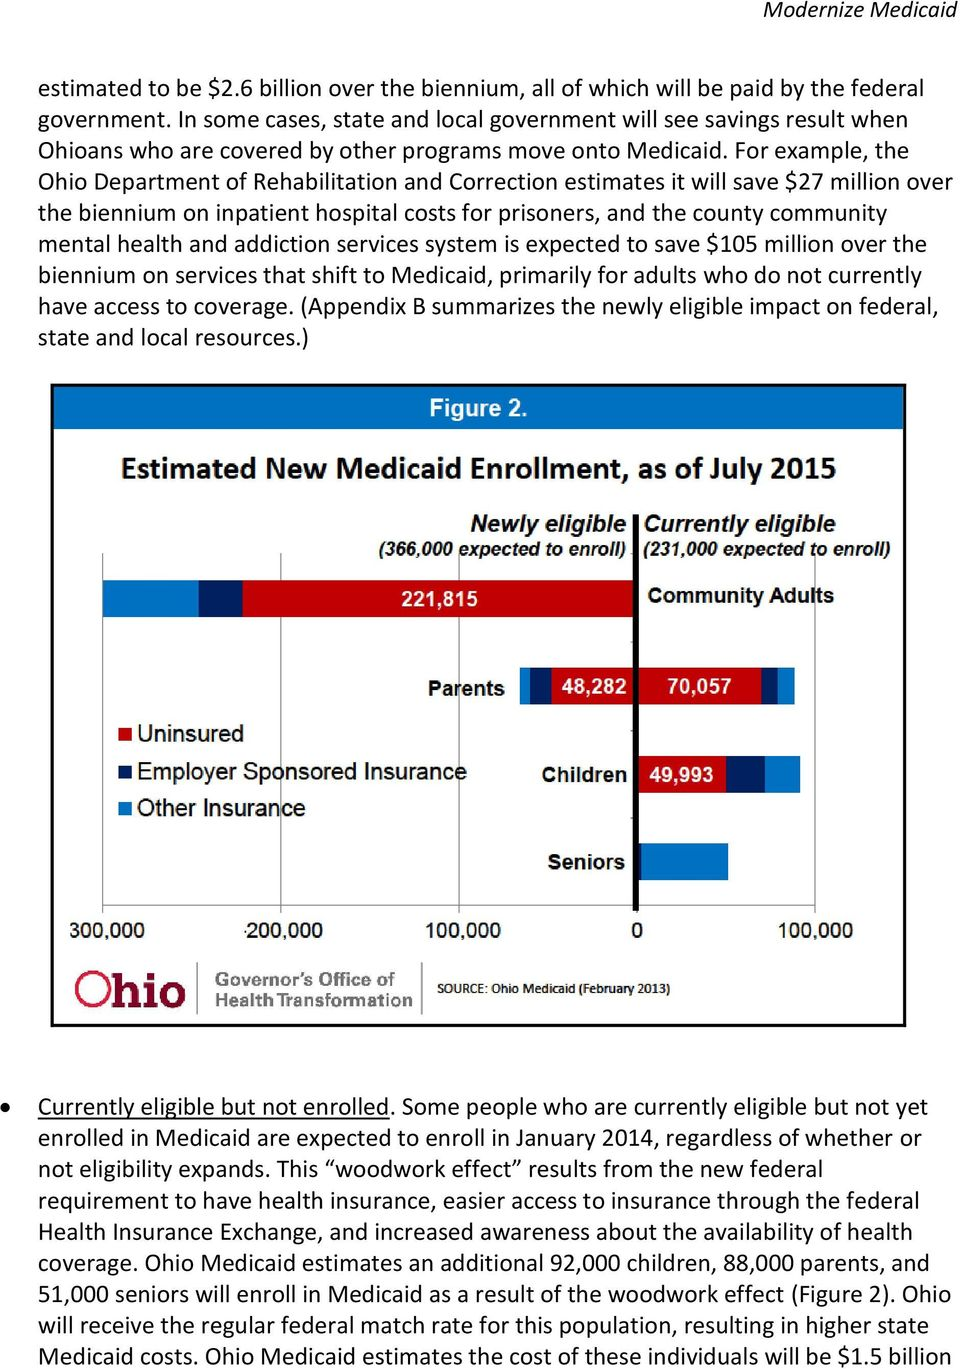 For example, the Ohio Department of Rehabilitation and Correction estimates it will save $27 million over the biennium on inpatient hospital costs for prisoners, and the county community mental